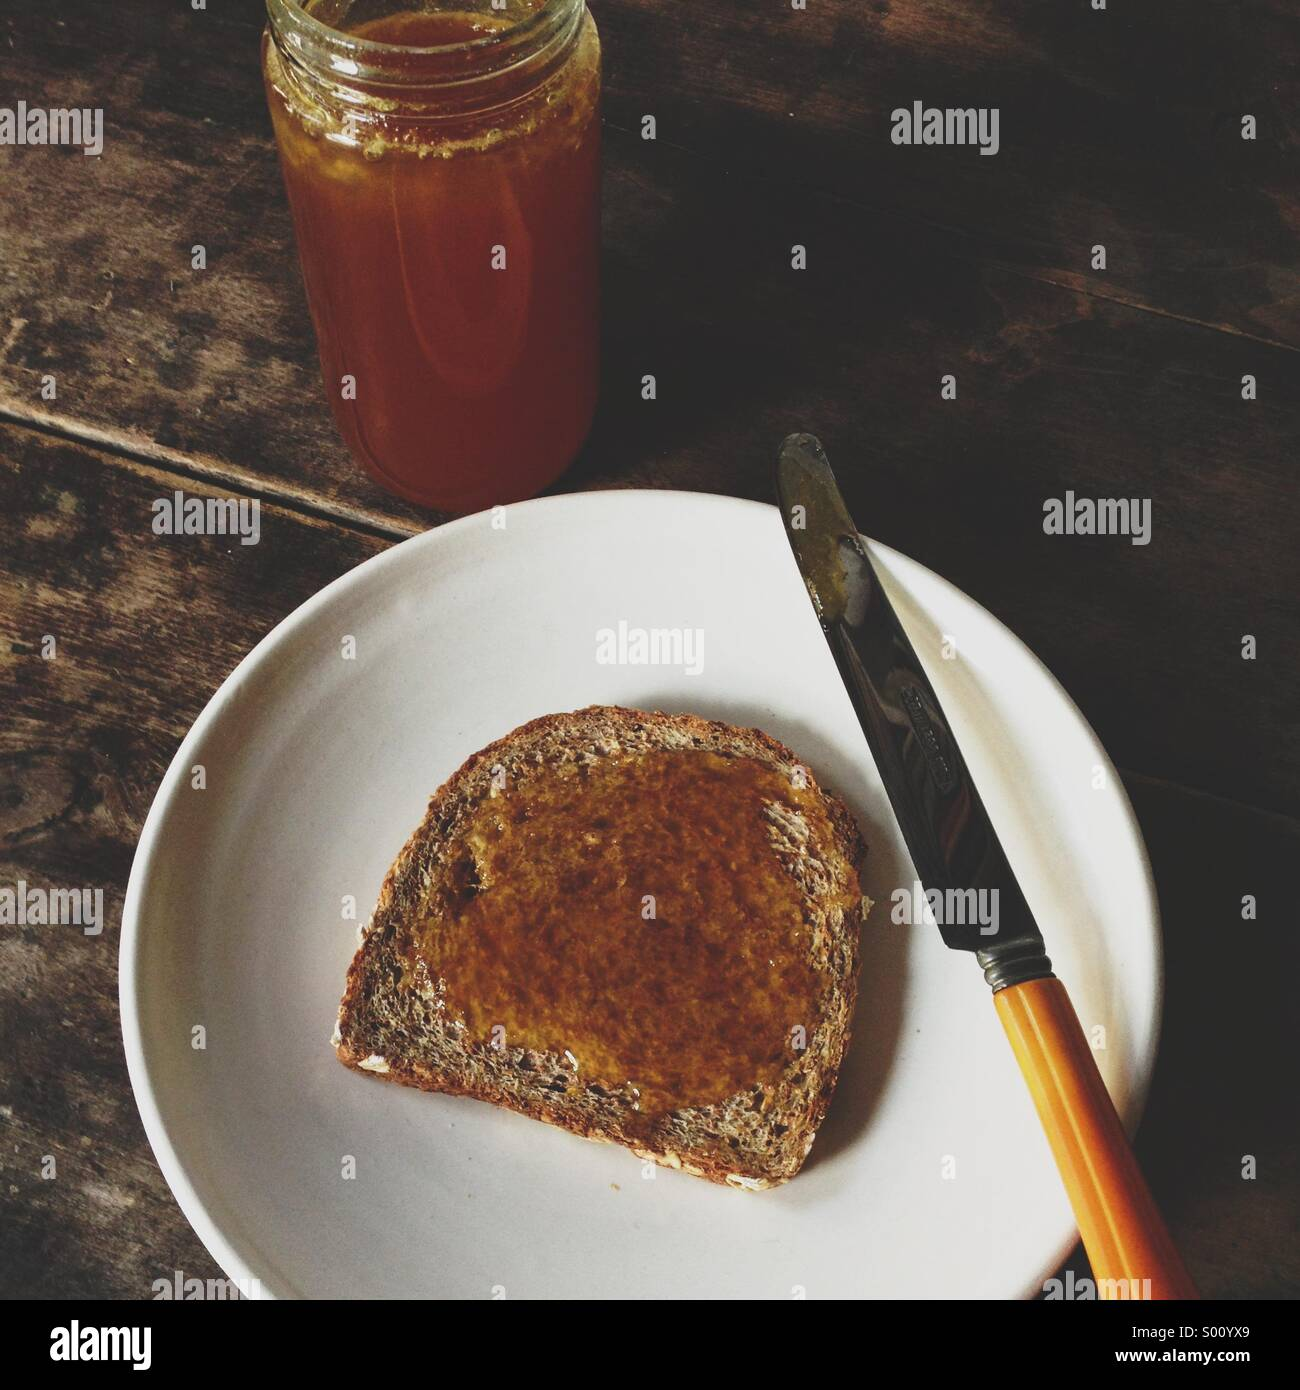 Organic raw honey on bread. - Stock Image